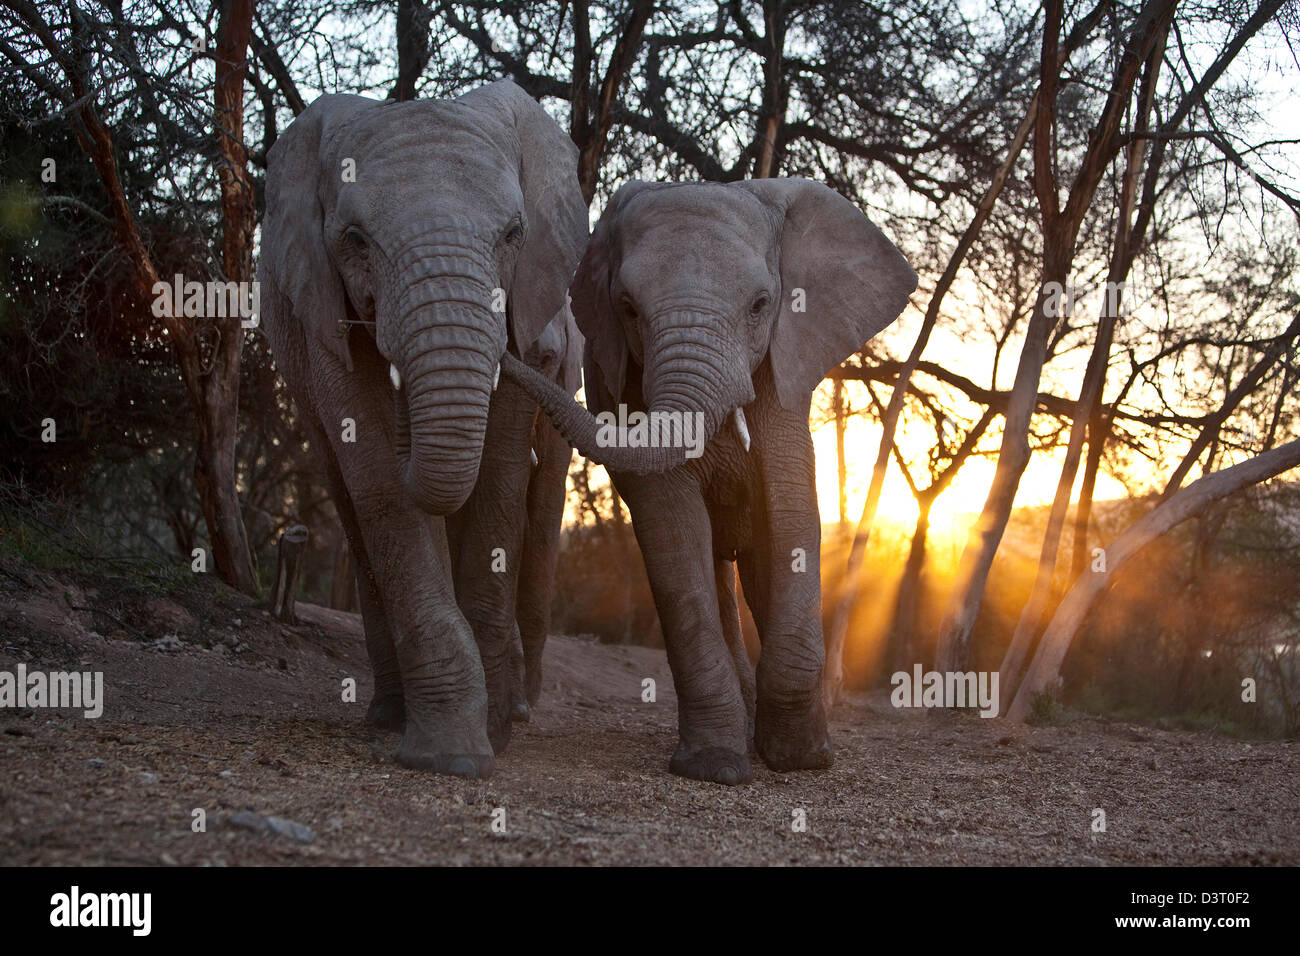 Elephant and young walking with trunks linked, Buffelsdrift Game Lodge, South Africa - Stock Image